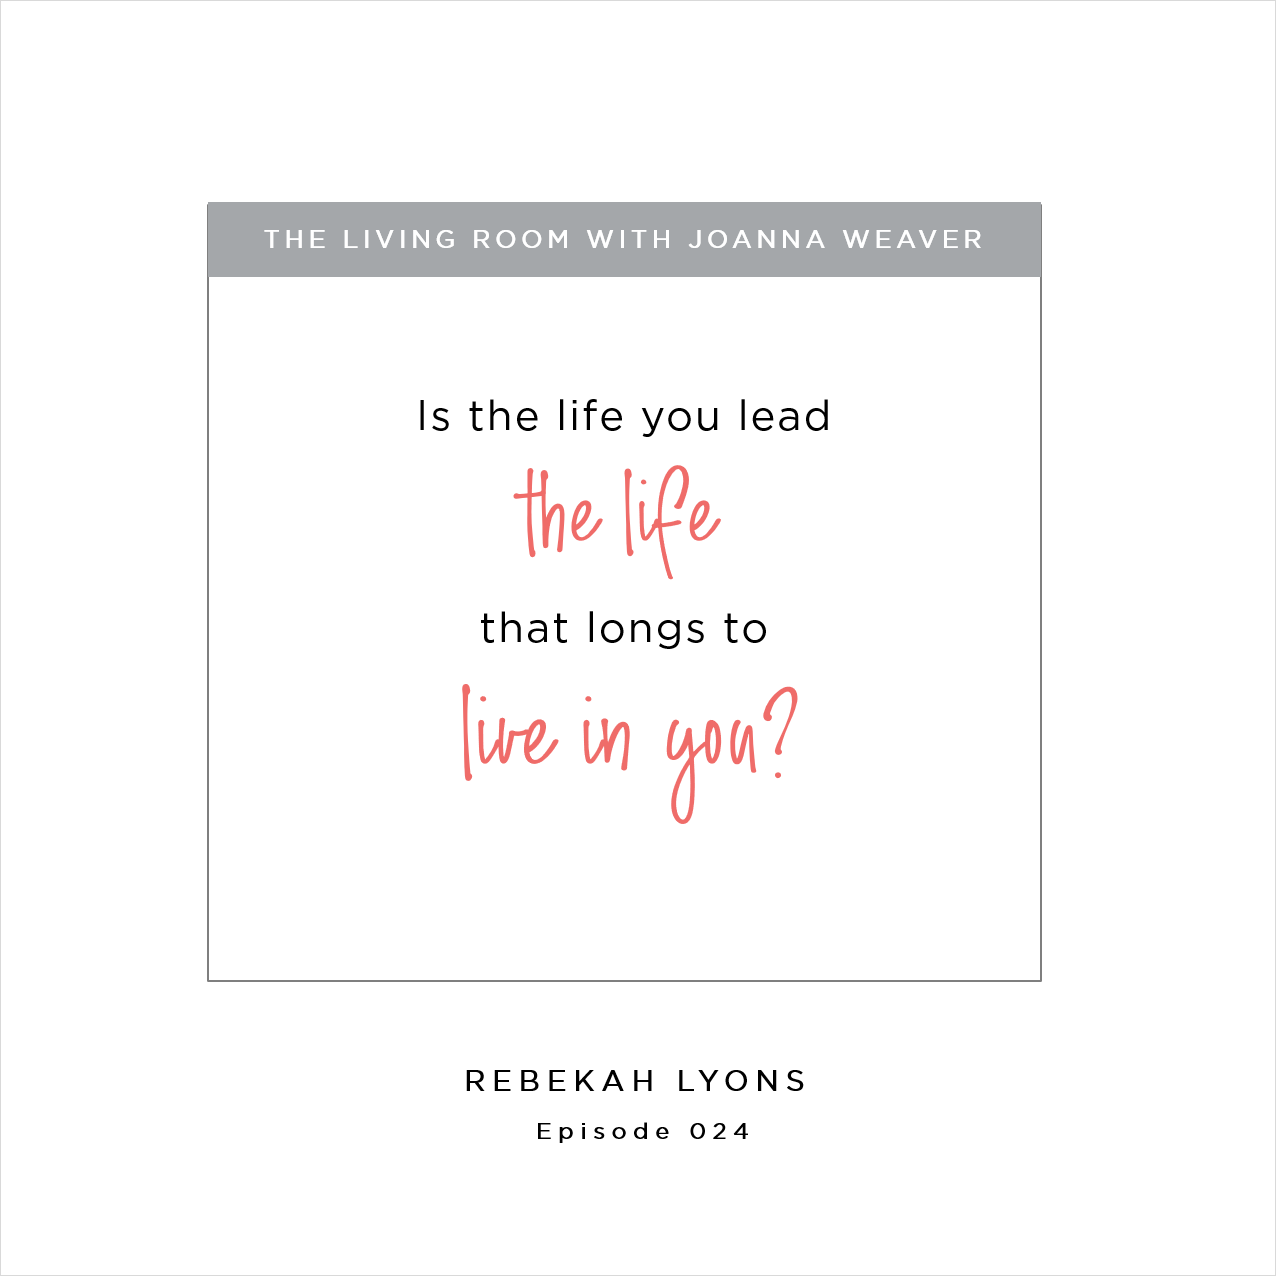 """Is the life you lead the life that longs to live in you?"" Rebekah Lyons - The Living Room Podcast - Episode 024"